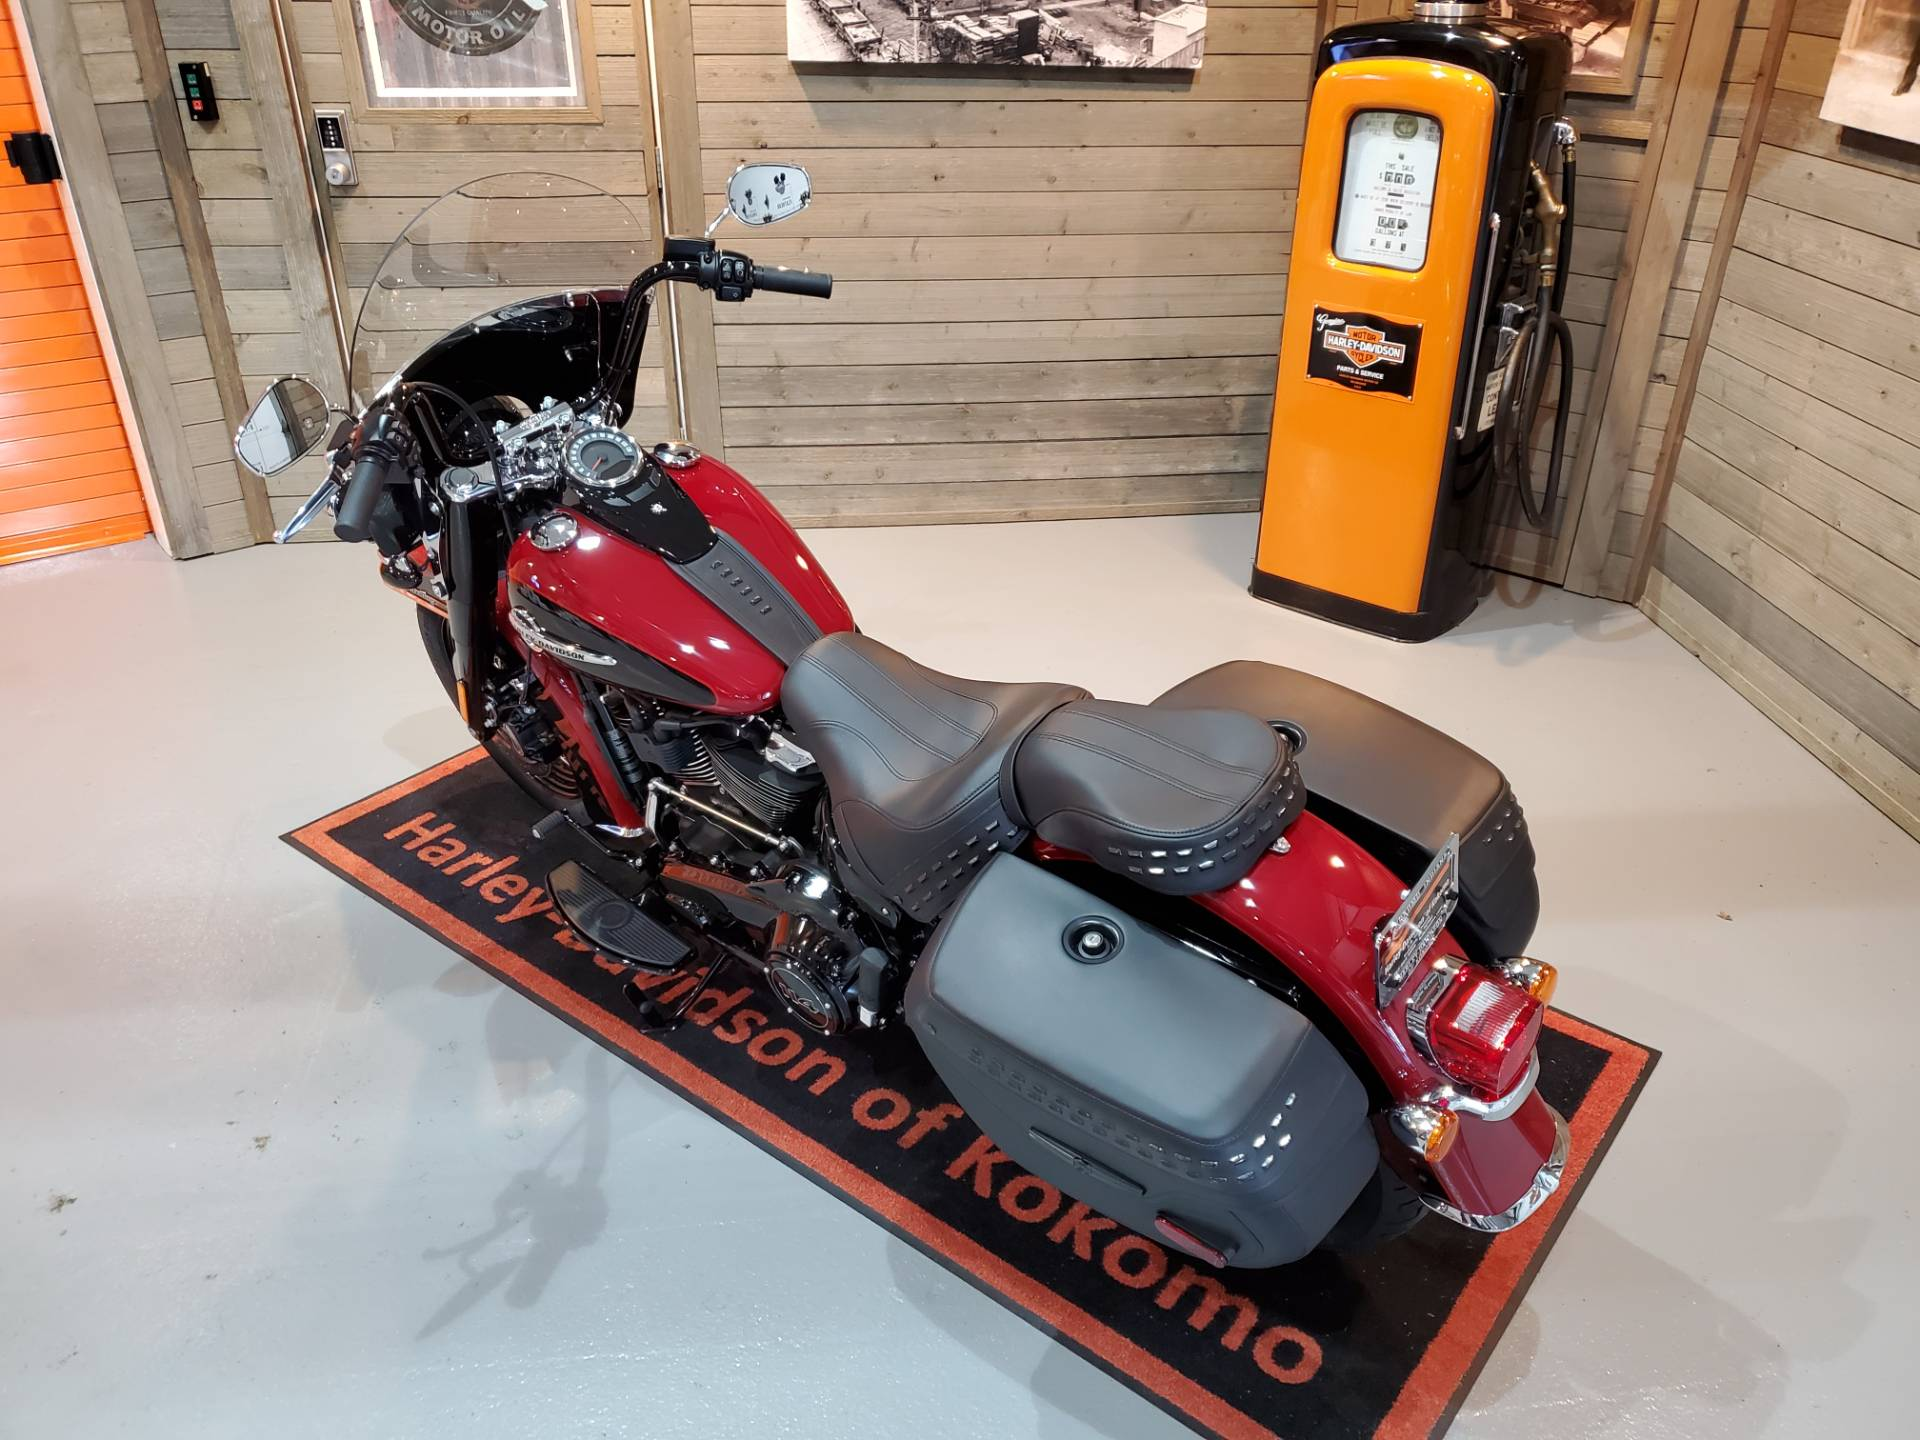 2020 Harley-Davidson Heritage Classic 114 in Kokomo, Indiana - Photo 18